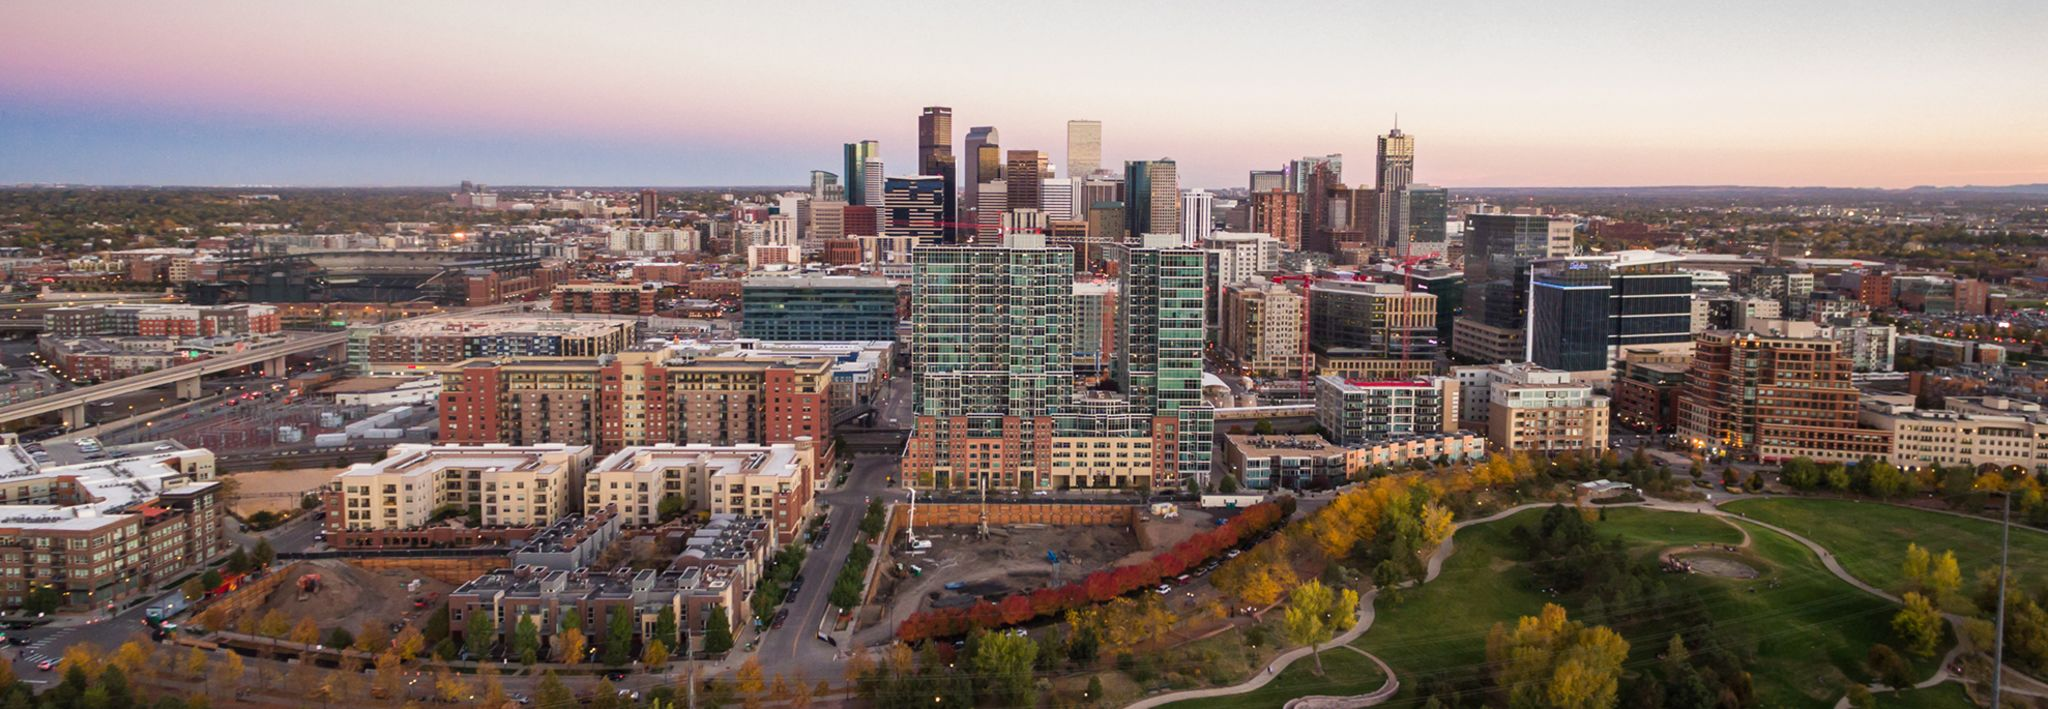 Beautiful view of the Denver skyline at sunset.